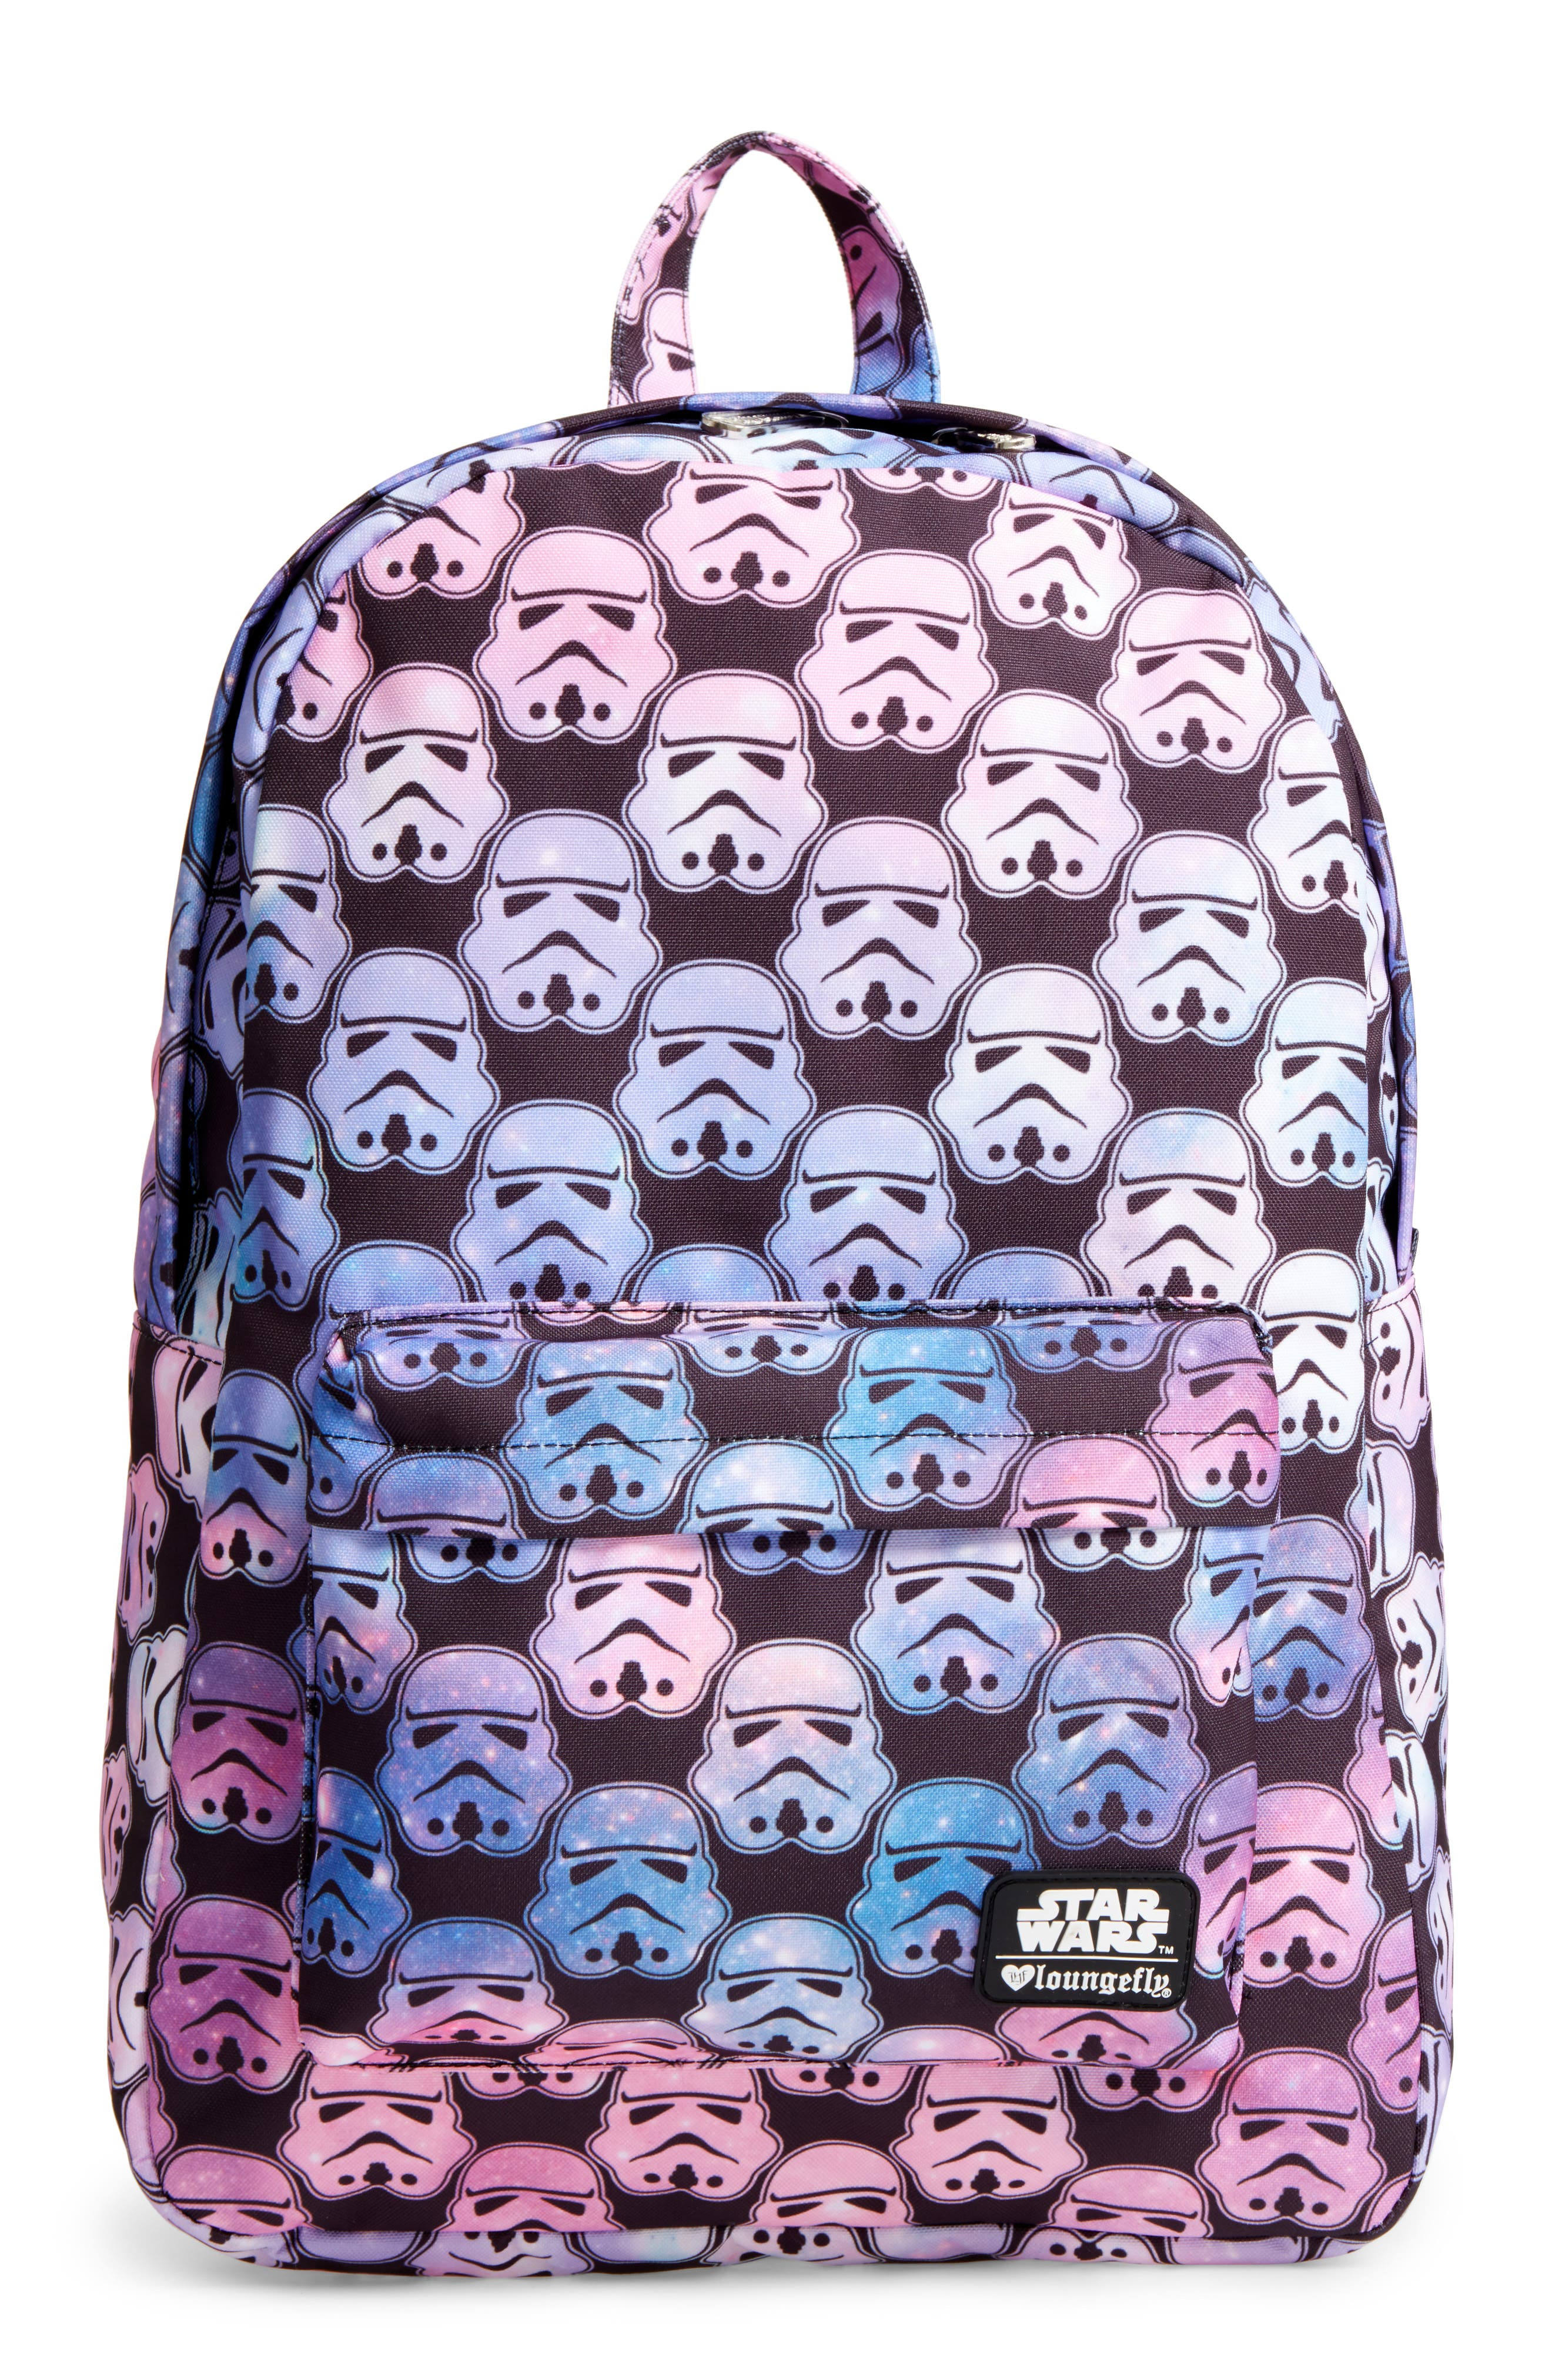 Star Wars<sup>™</sup> Stormtrooper Galaxy Backpack,                             Main thumbnail 1, color,                             Multi Black